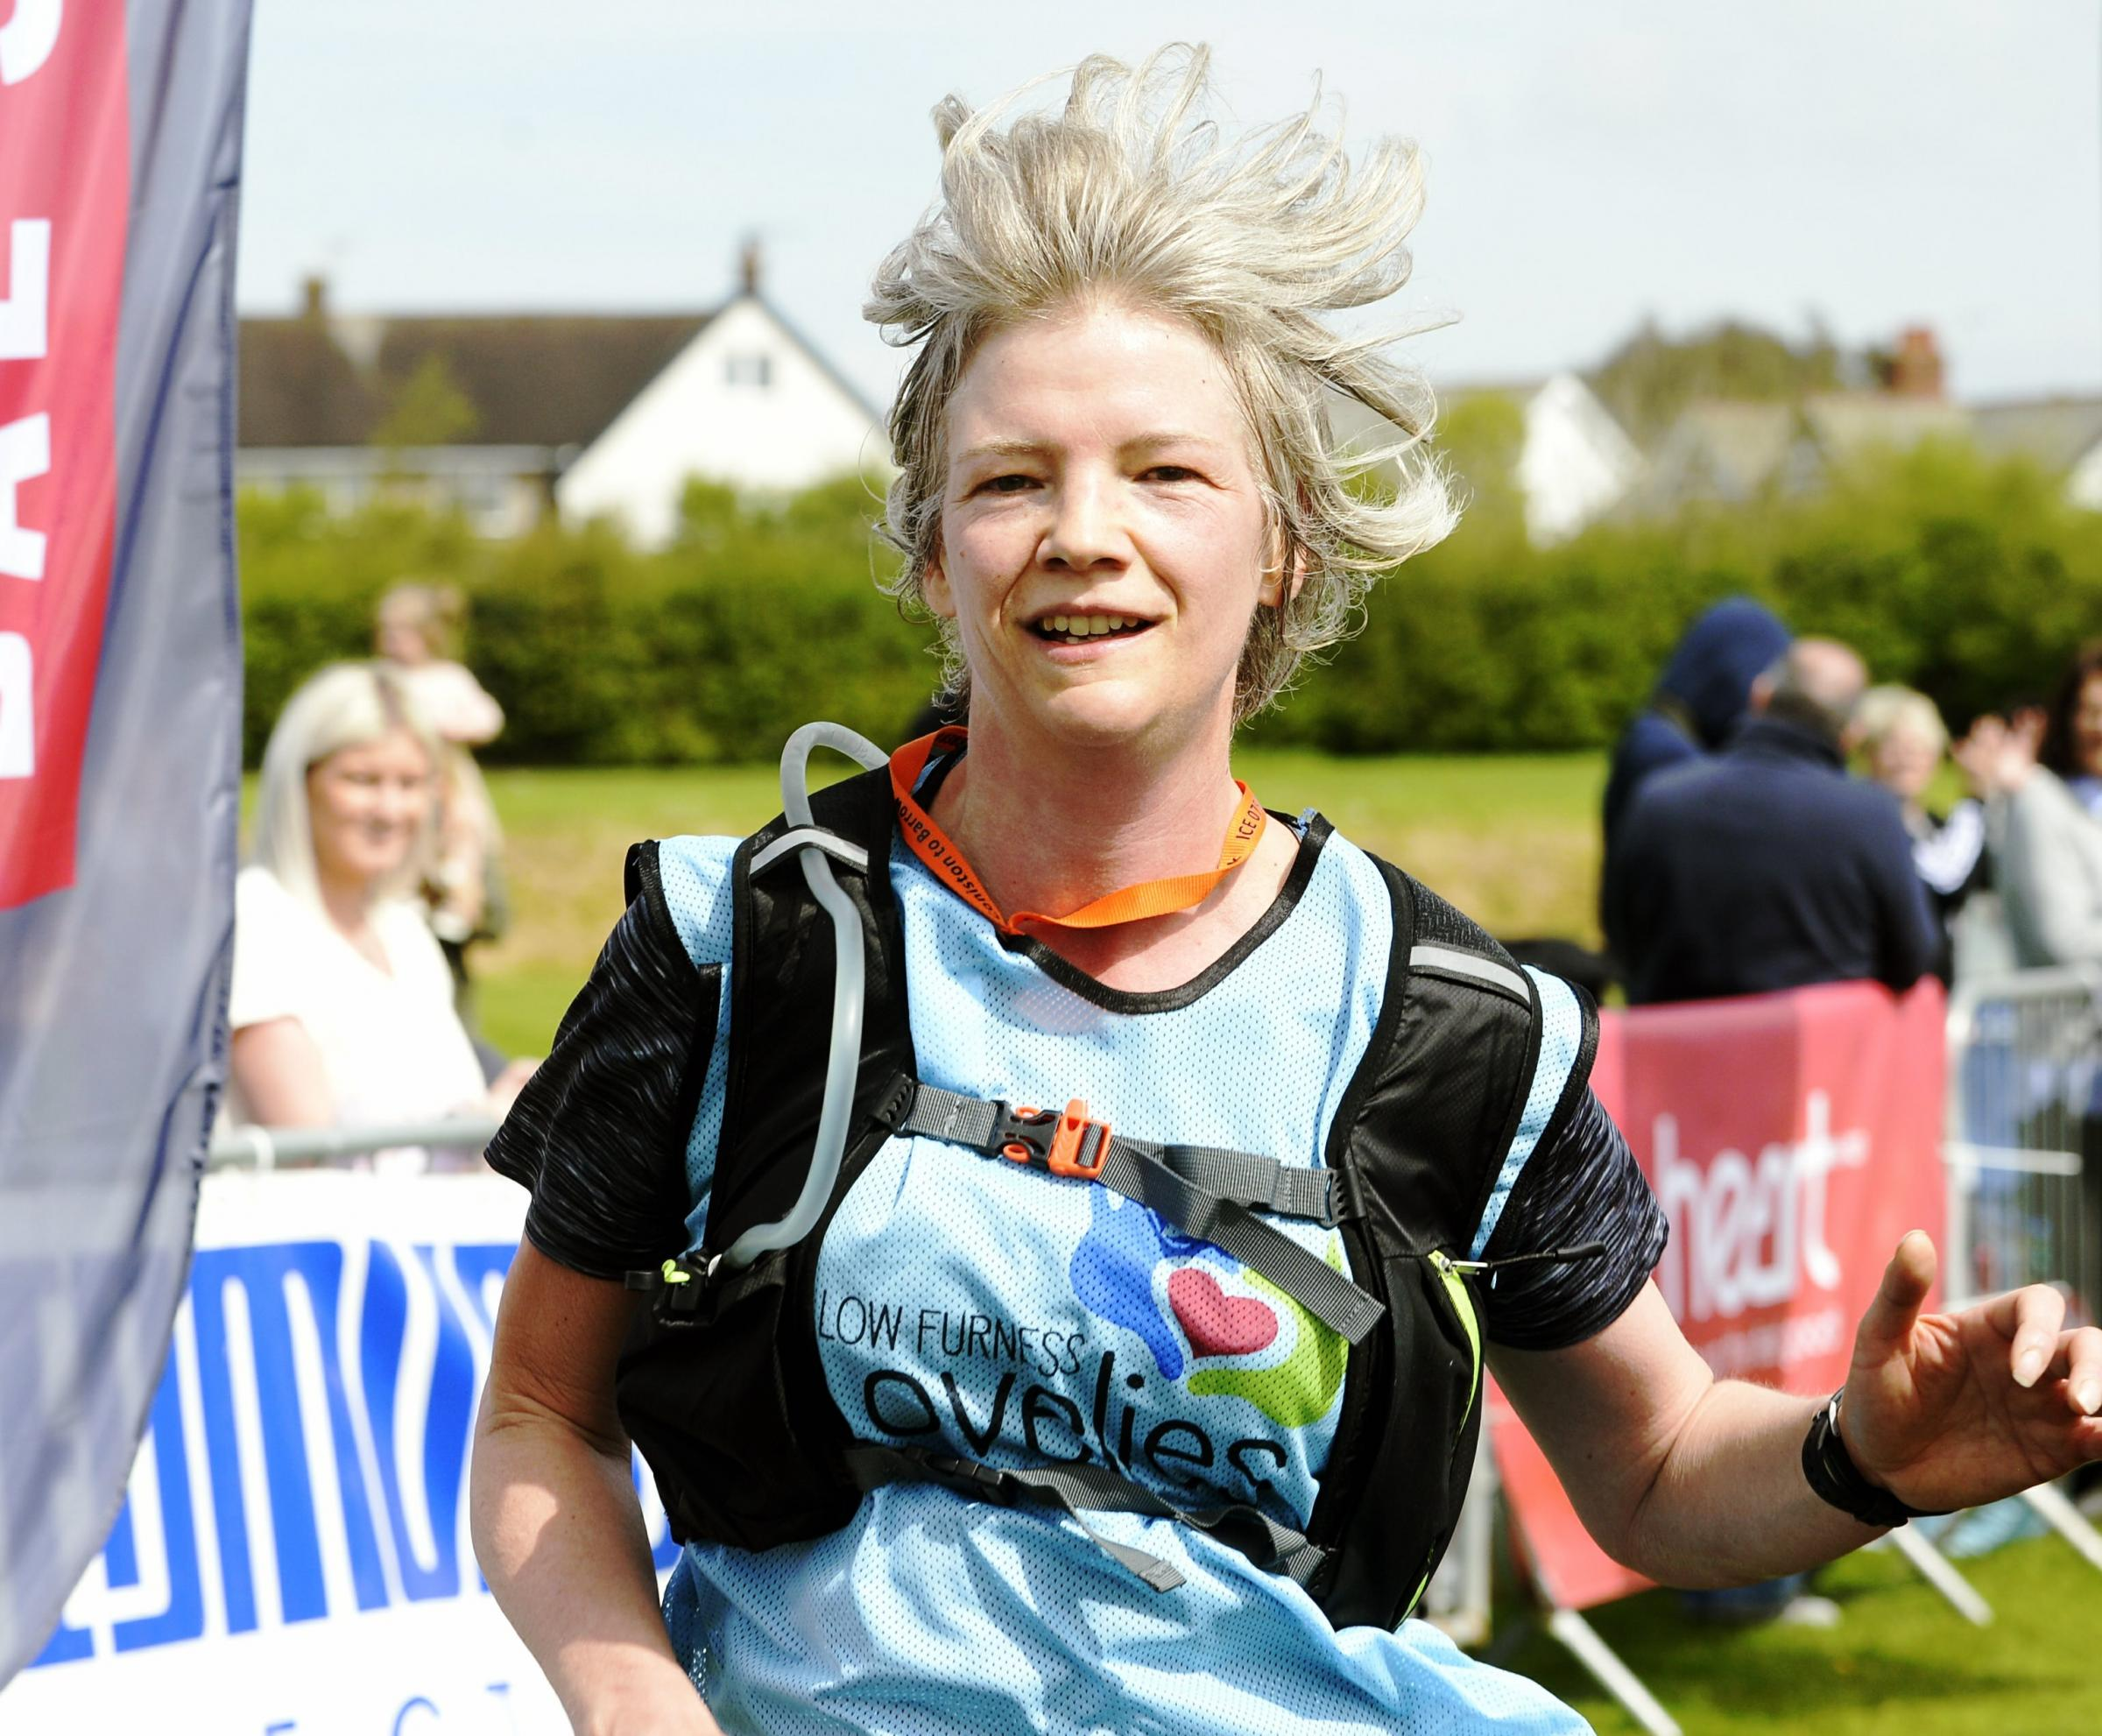 First woman home in the Coniston to Barrow event was Julie Hunter of Great Urswick in 3:08:19 (Picture: Jon Granger)